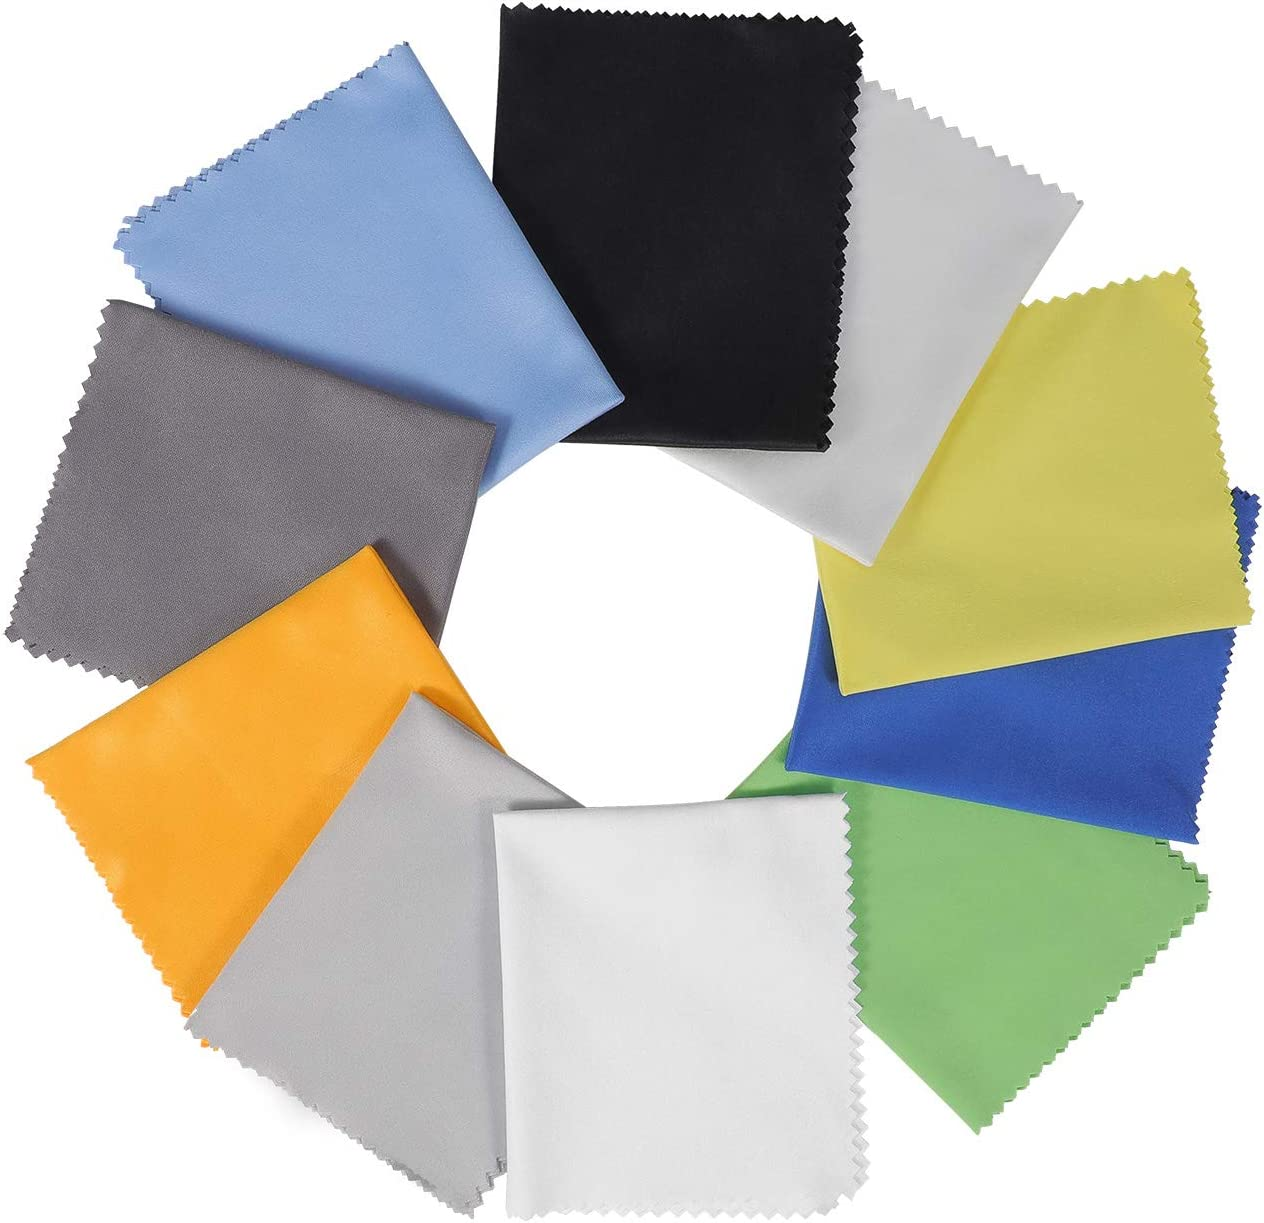 """10 Pack Assorted Colors Microfiber Cleaning Cloths - 6"""" x 7"""" Microfiber Glasses Cloth - Great for Cleaning Eyeglasses, Cell Phones, Screens, Lenses, Glasses, Screens and All Delicate Surface …"""